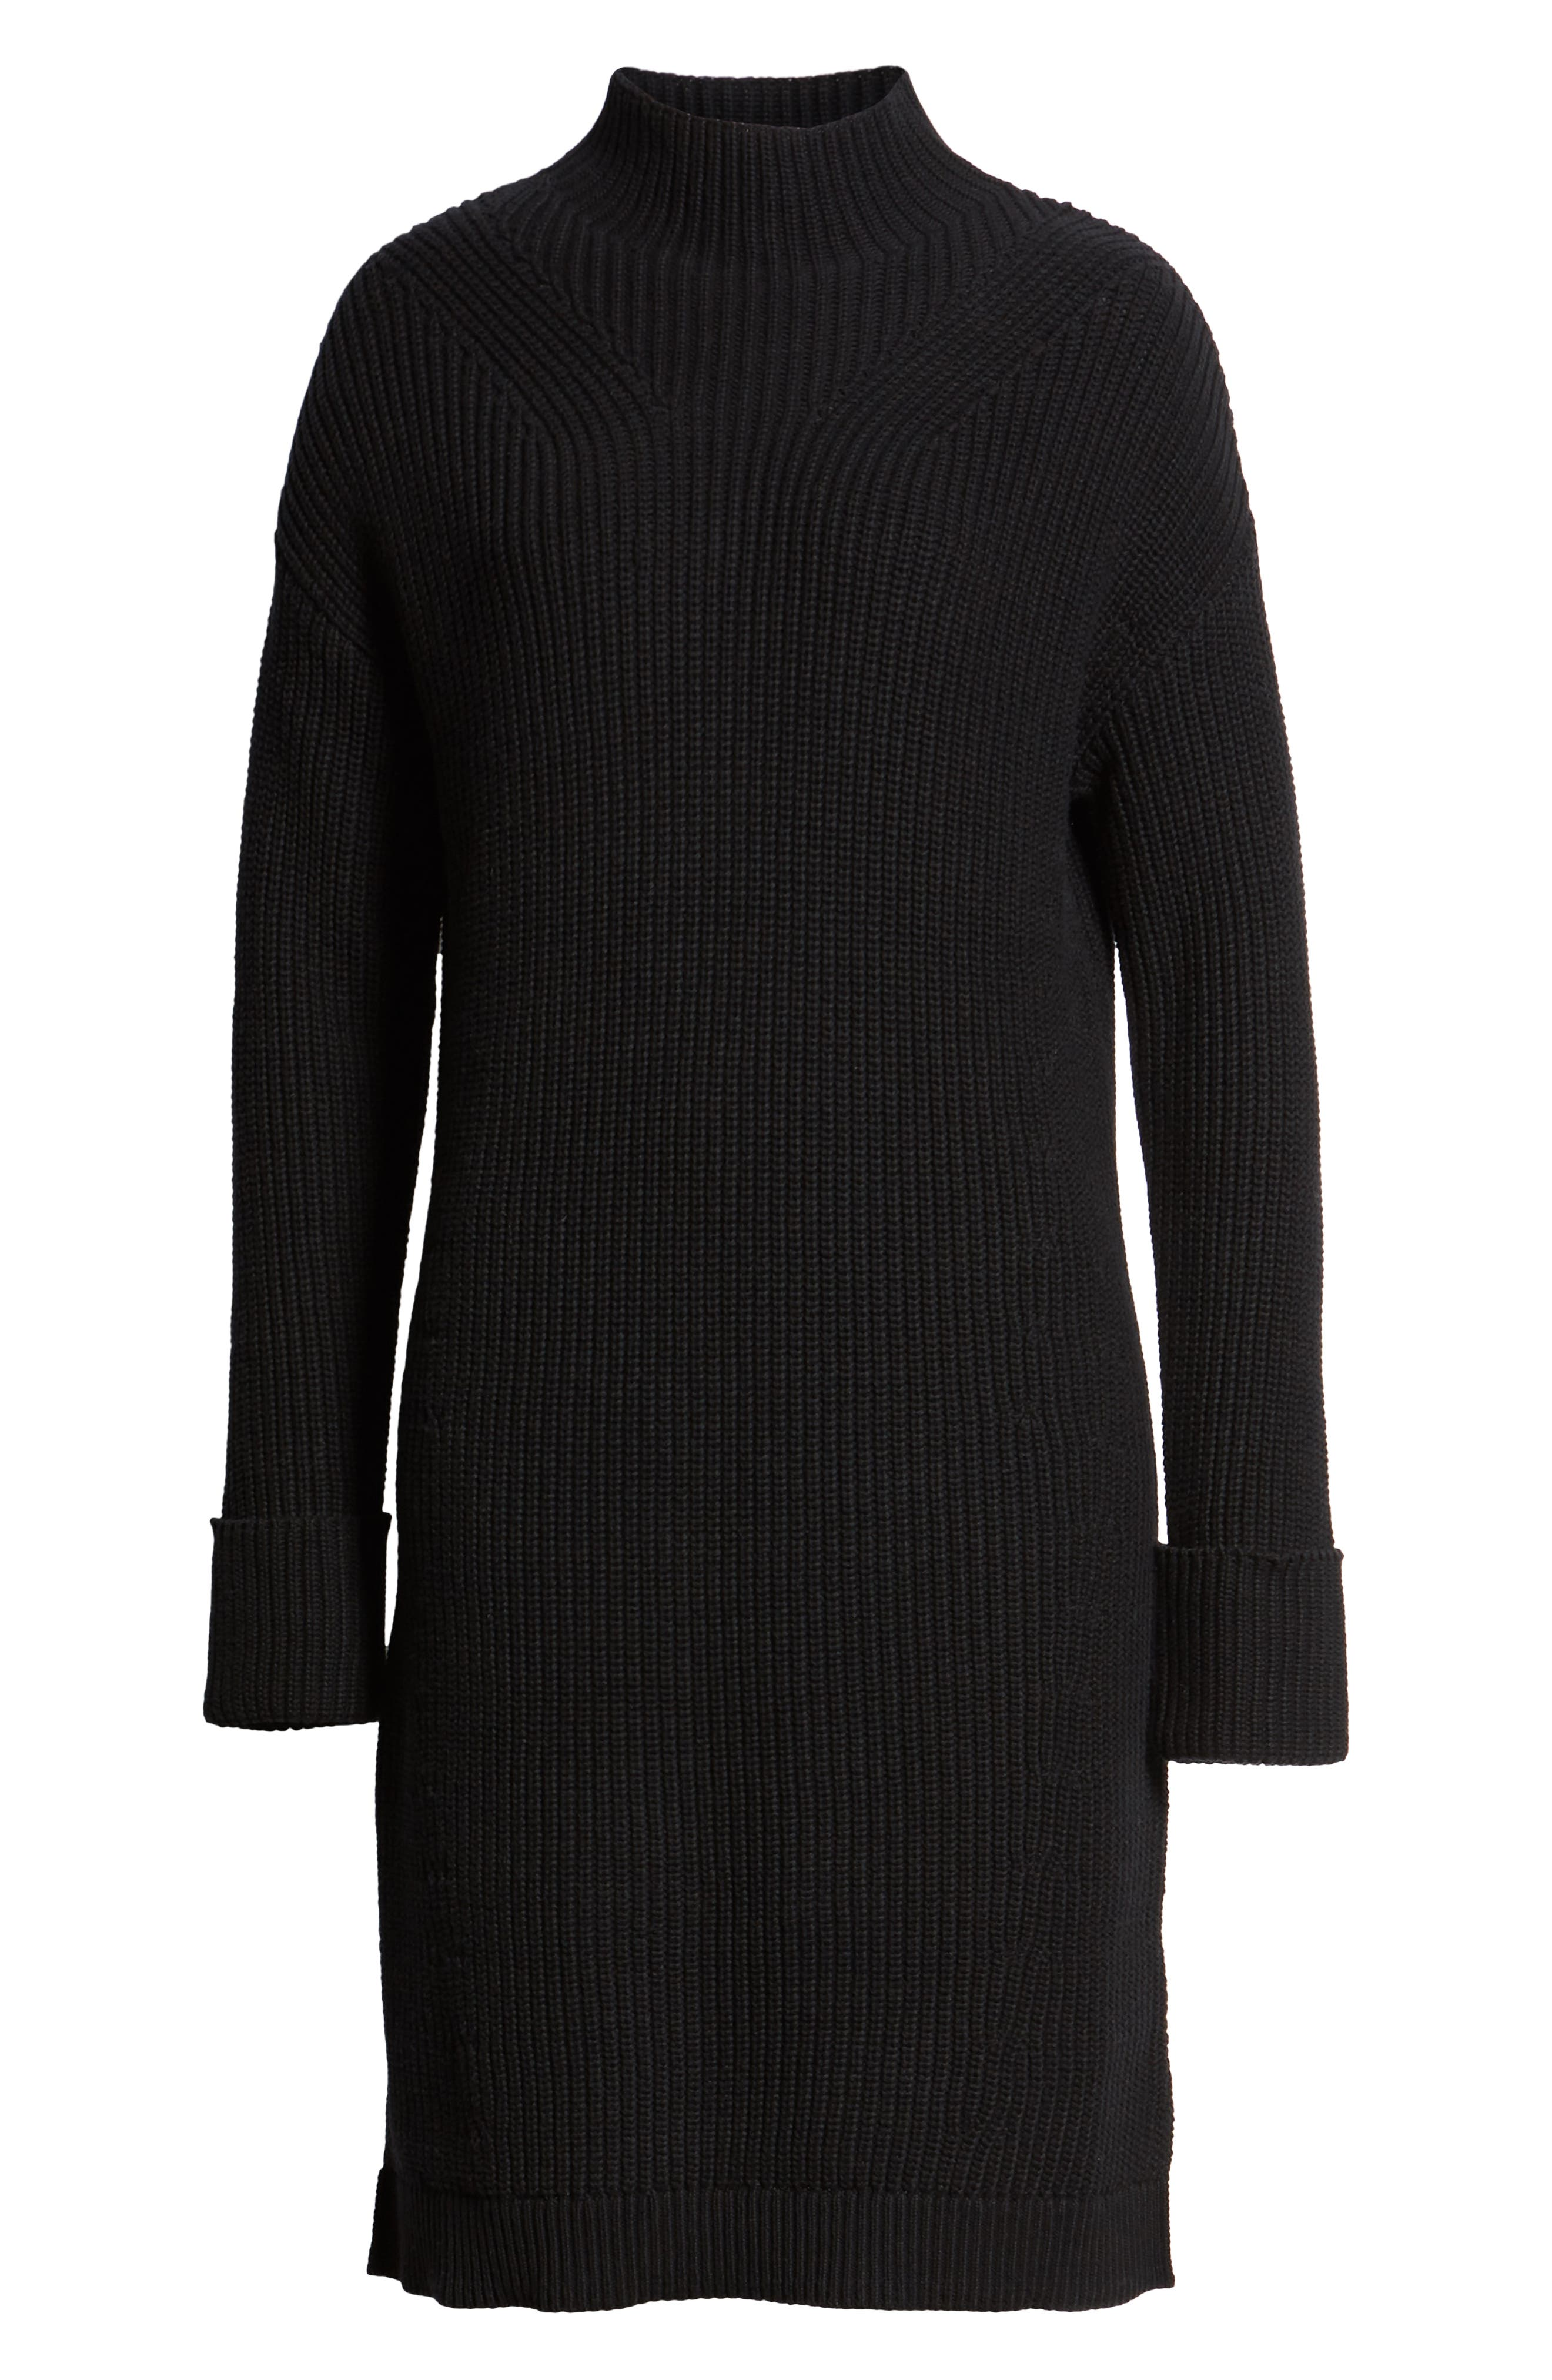 Ribbed Sweater Dress,                             Alternate thumbnail 7, color,                             001